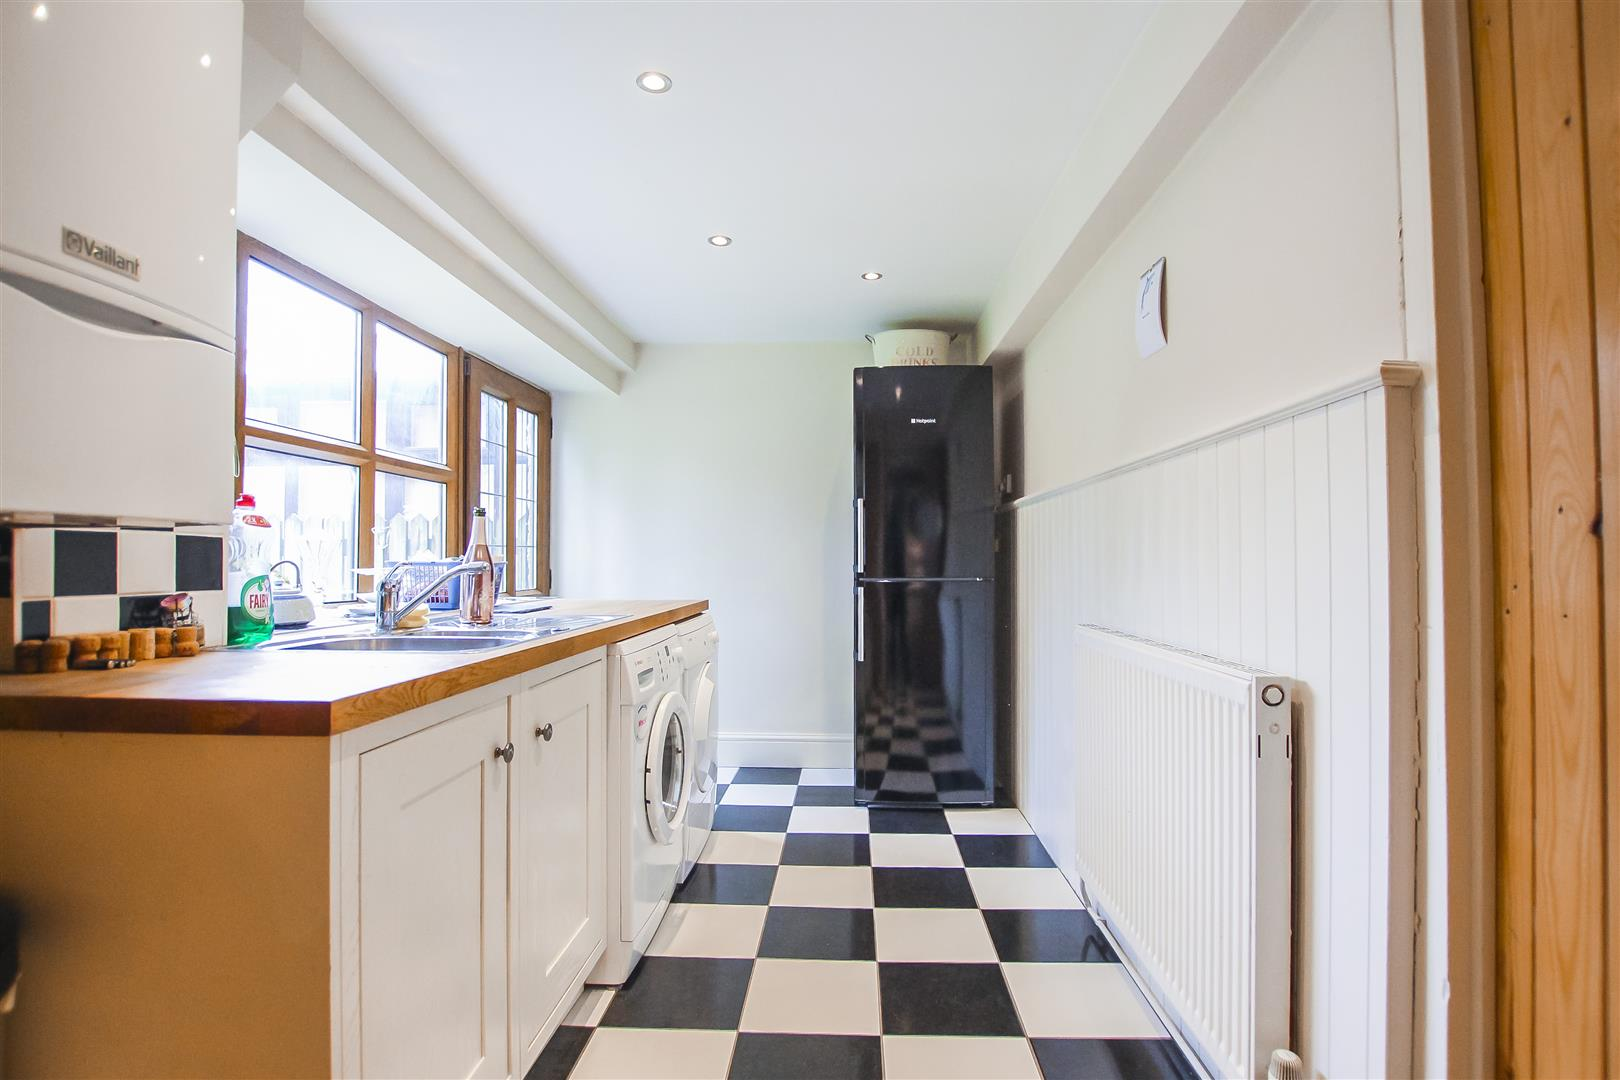 4 Bedroom Farmhouse For Sale - Image 28